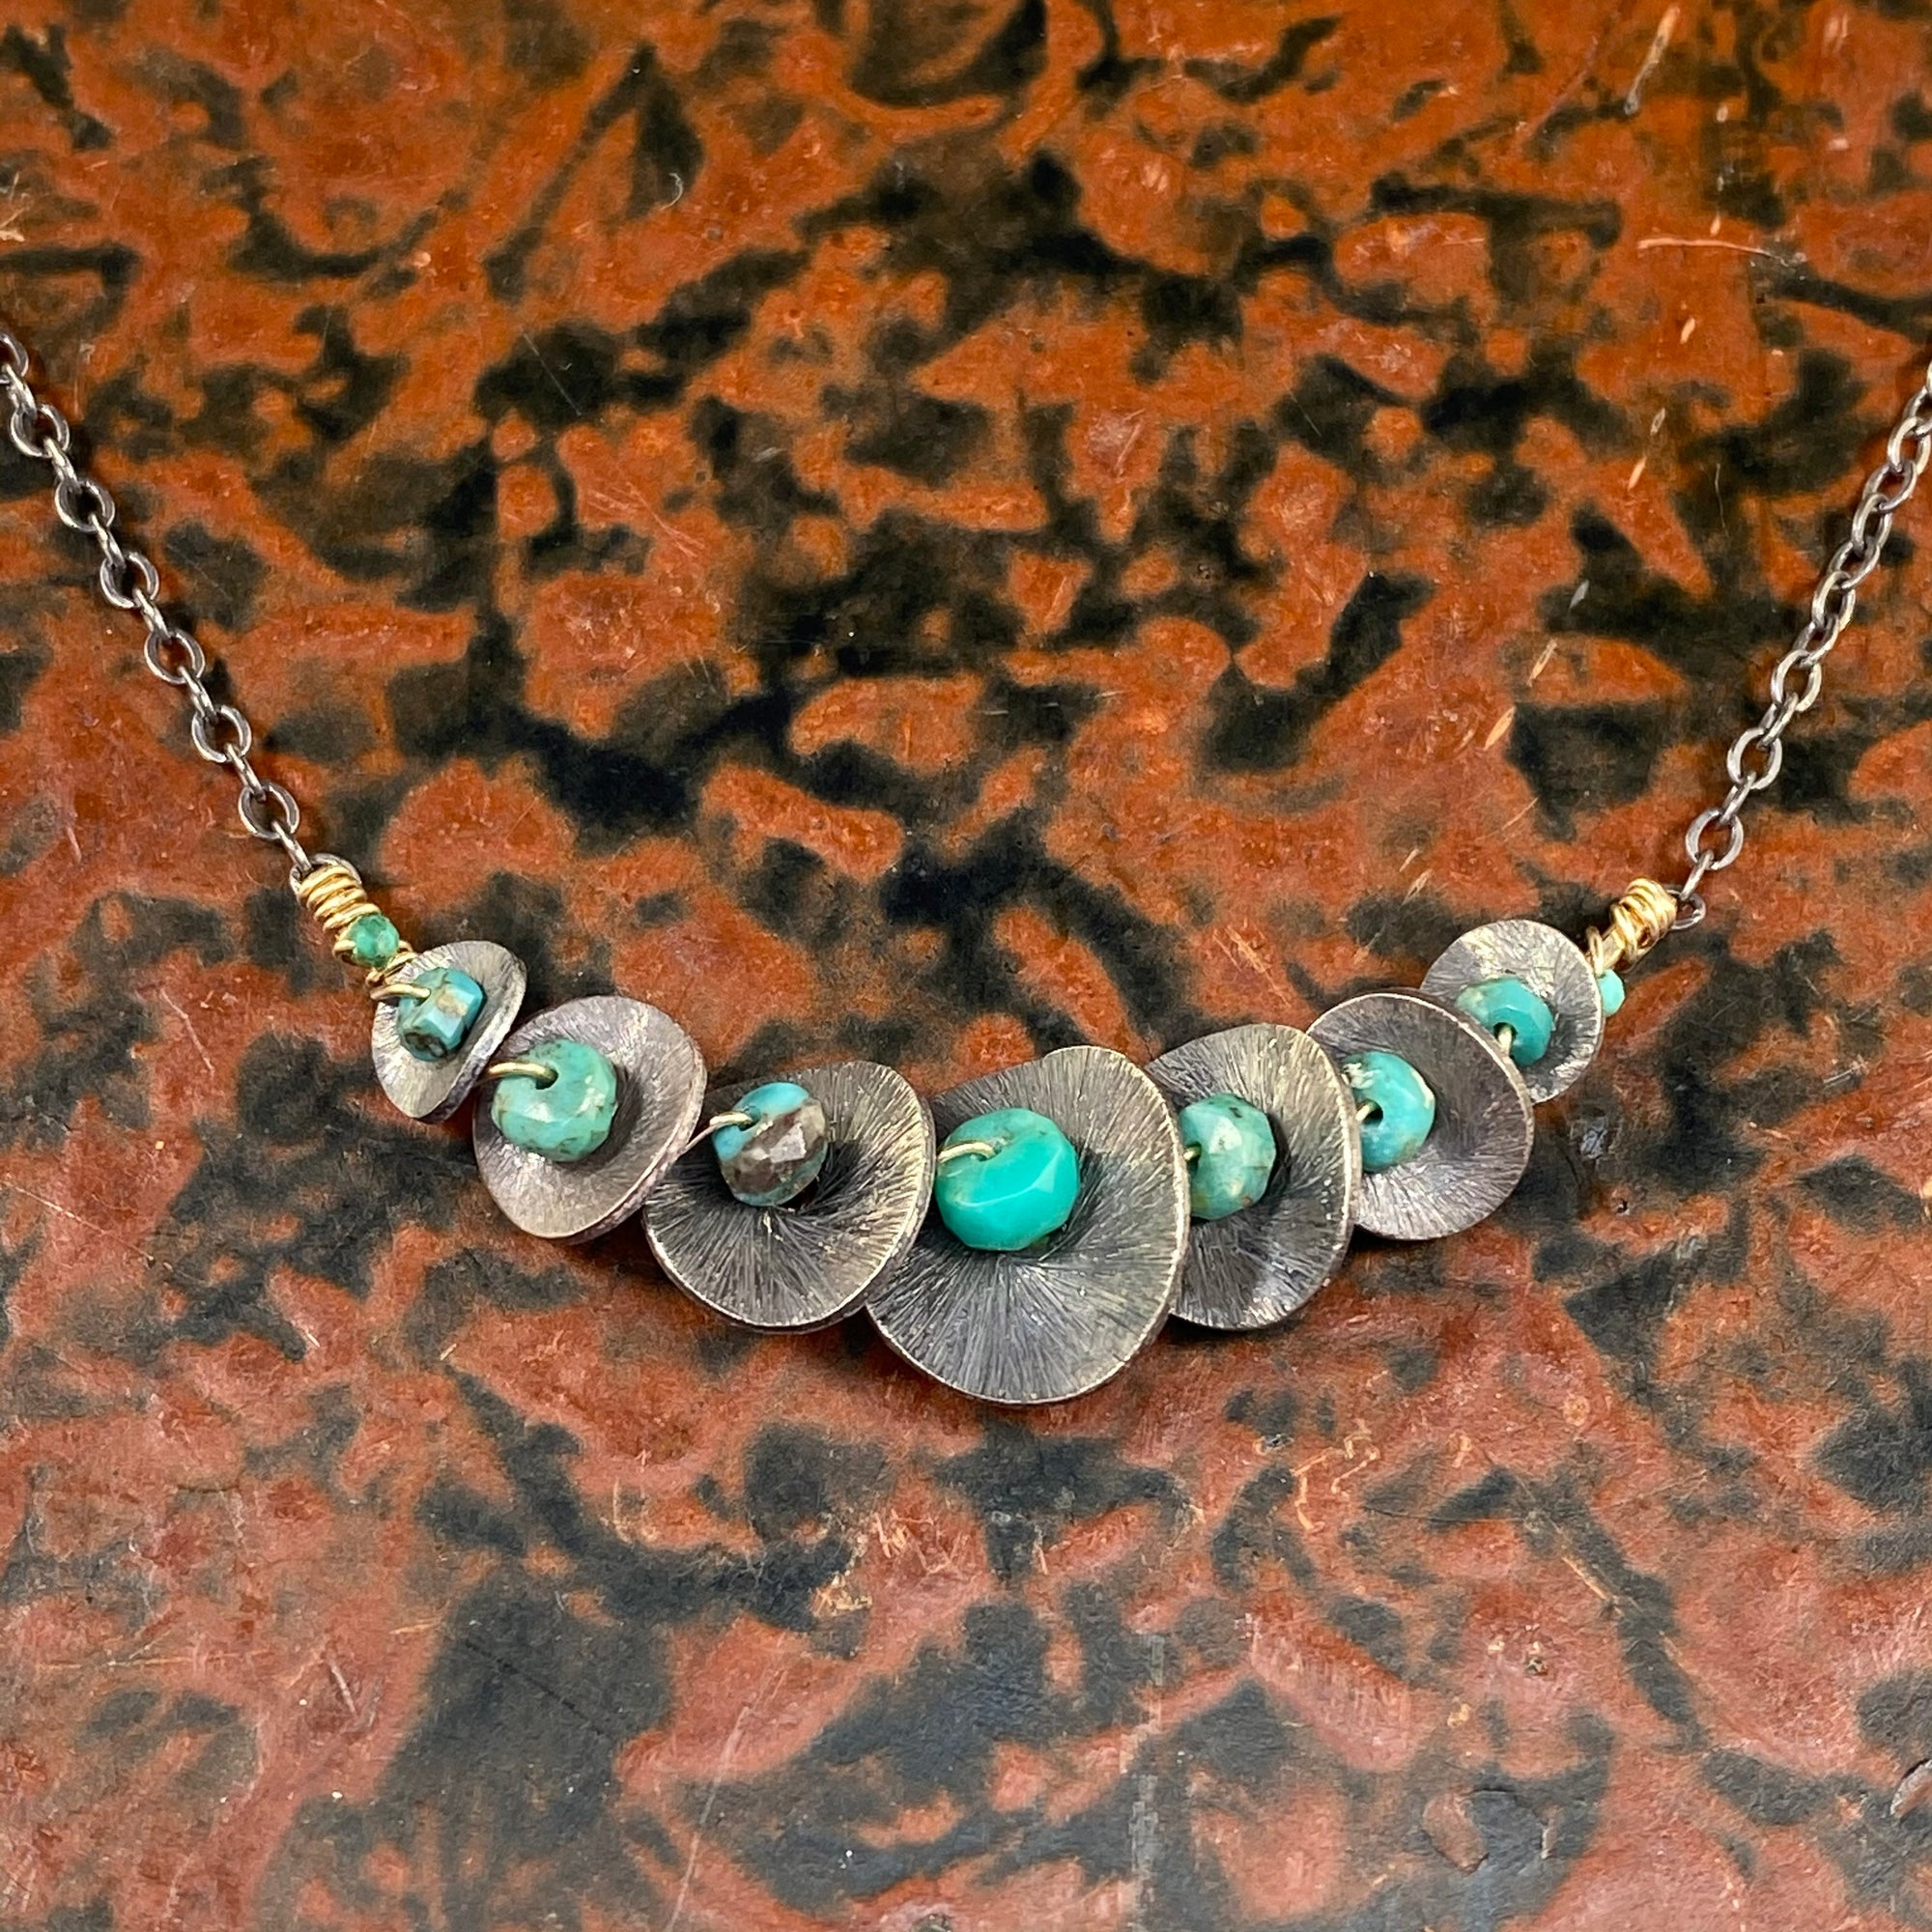 Turquoise Wrapped Bar Necklace - Heart of the Home PA